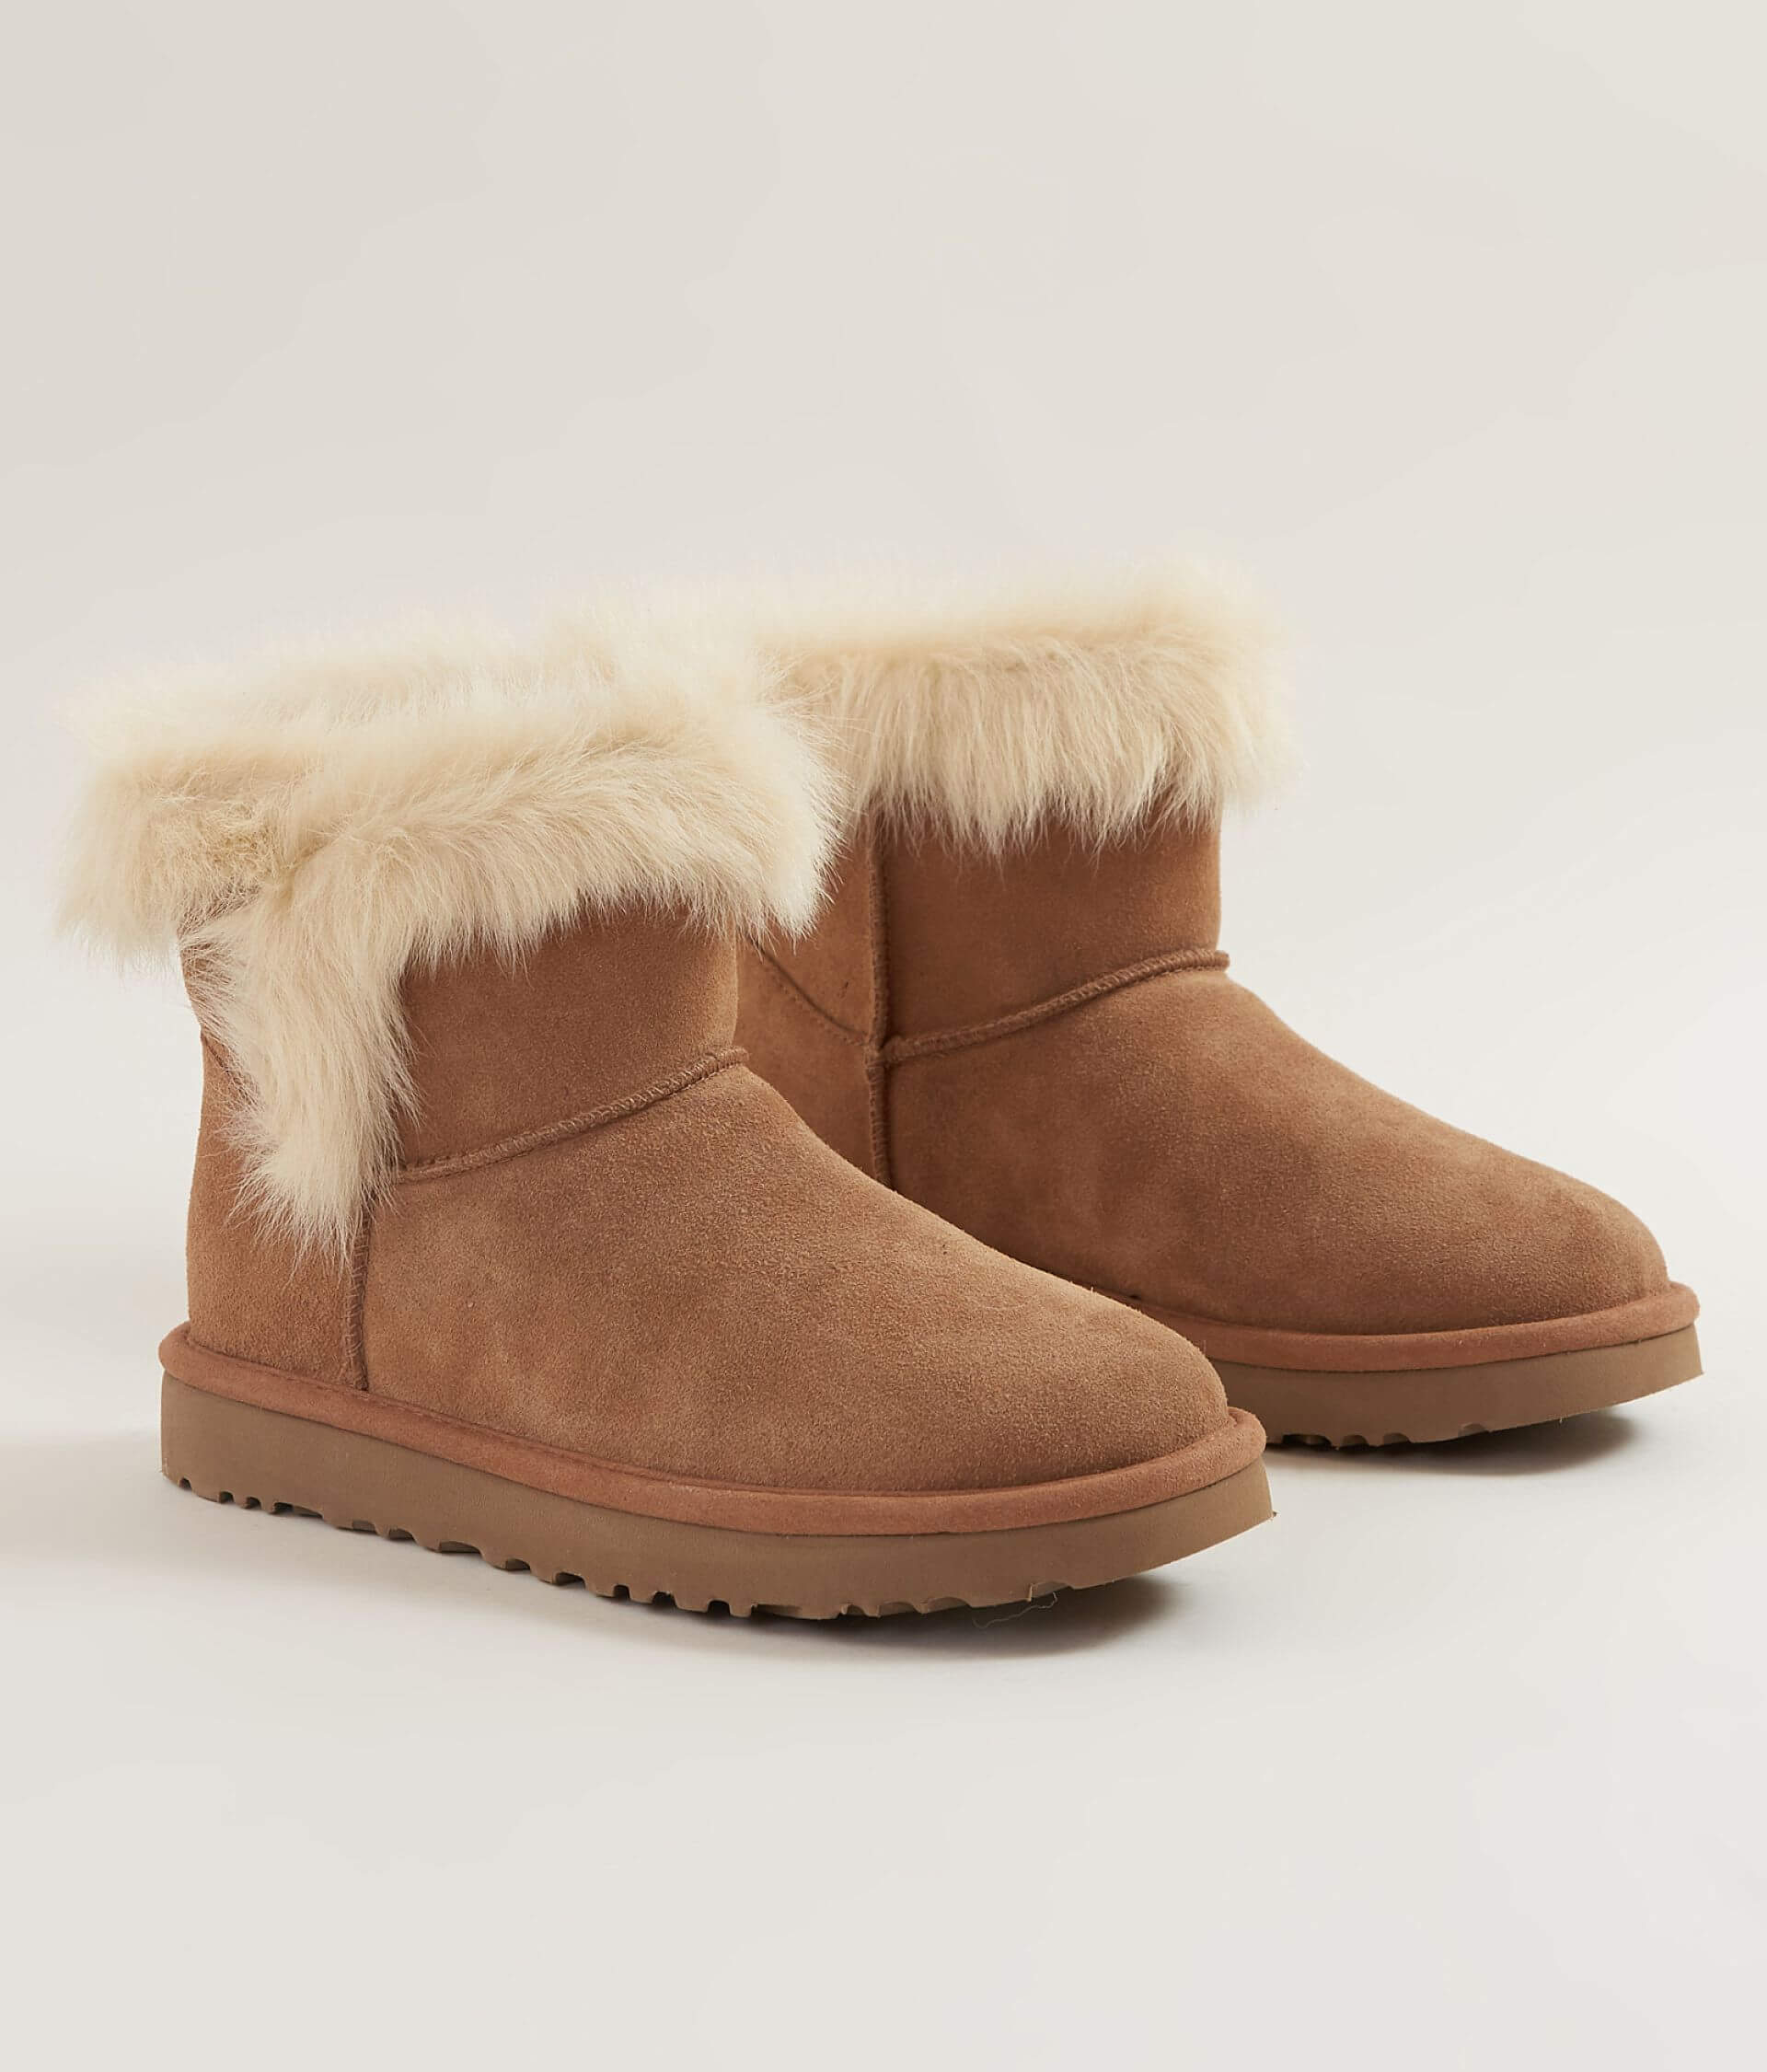 f232f825968 UGG® Milla Leather Boot - Women's Shoes in Chestnut   Buckle